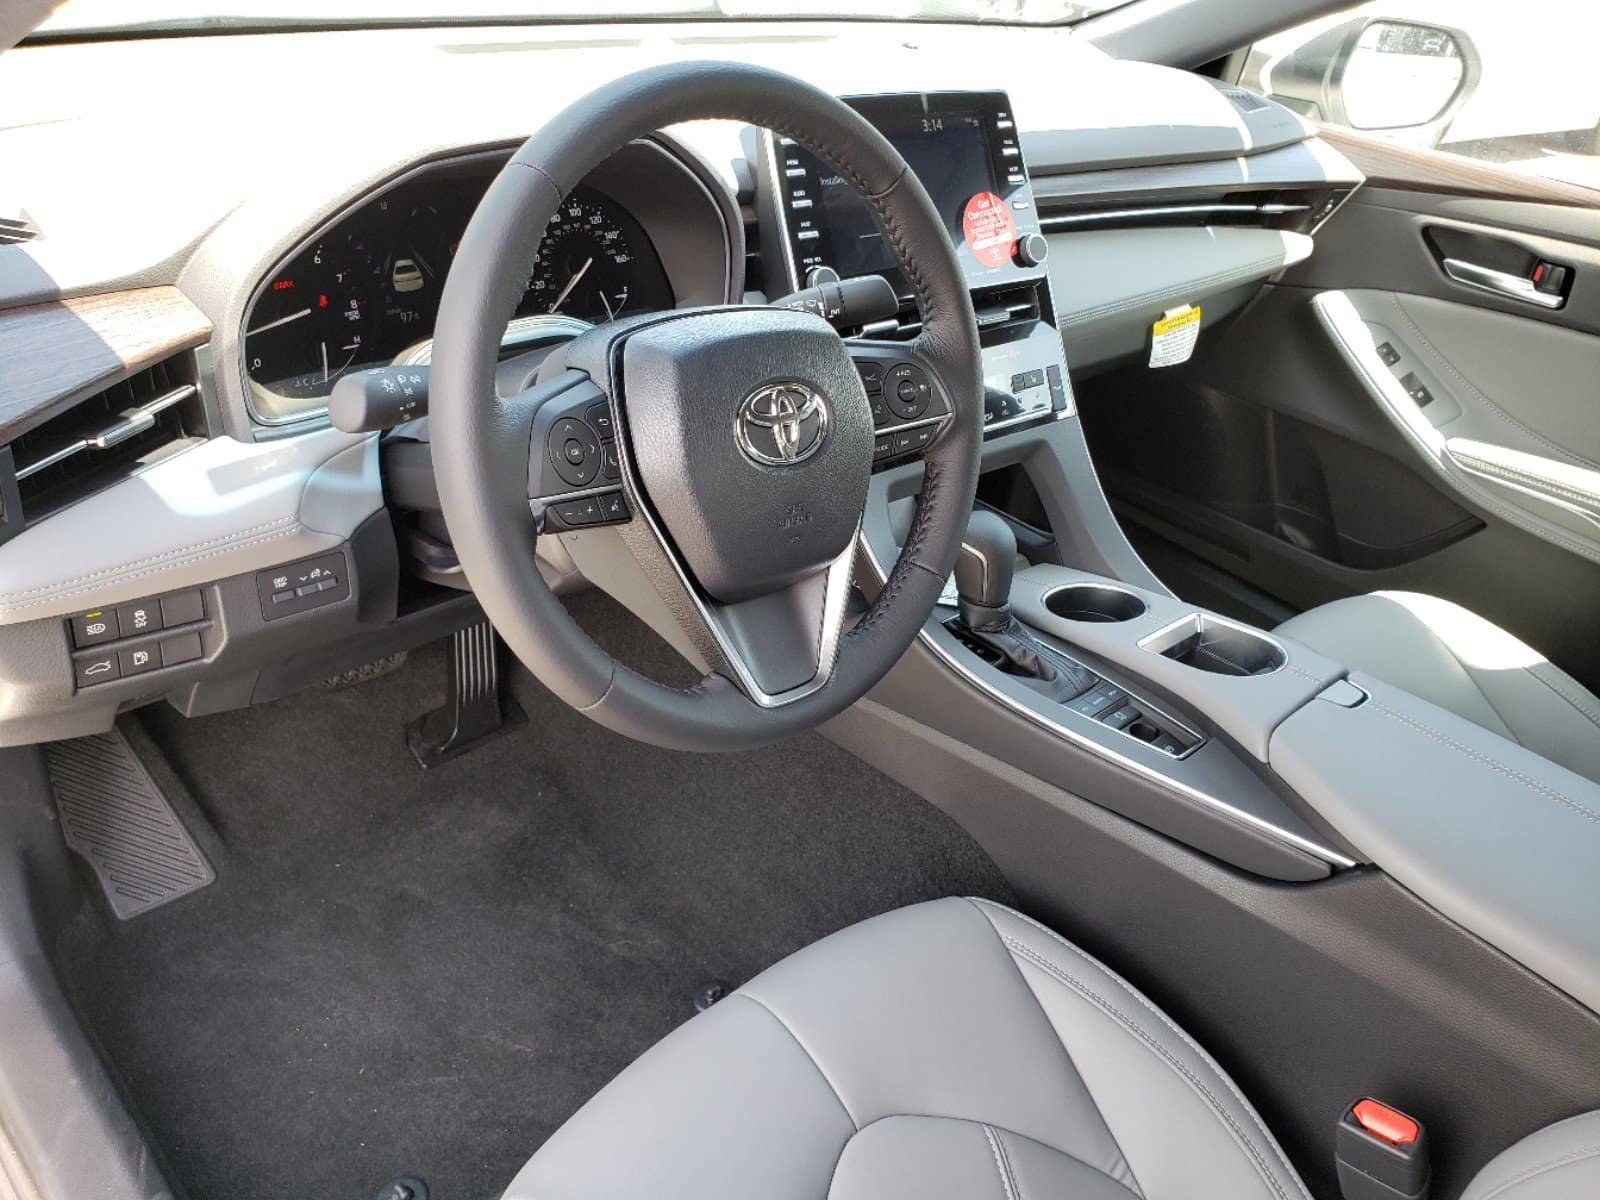 Test drive the new Toyota Avalon at Toyota of Orlando.